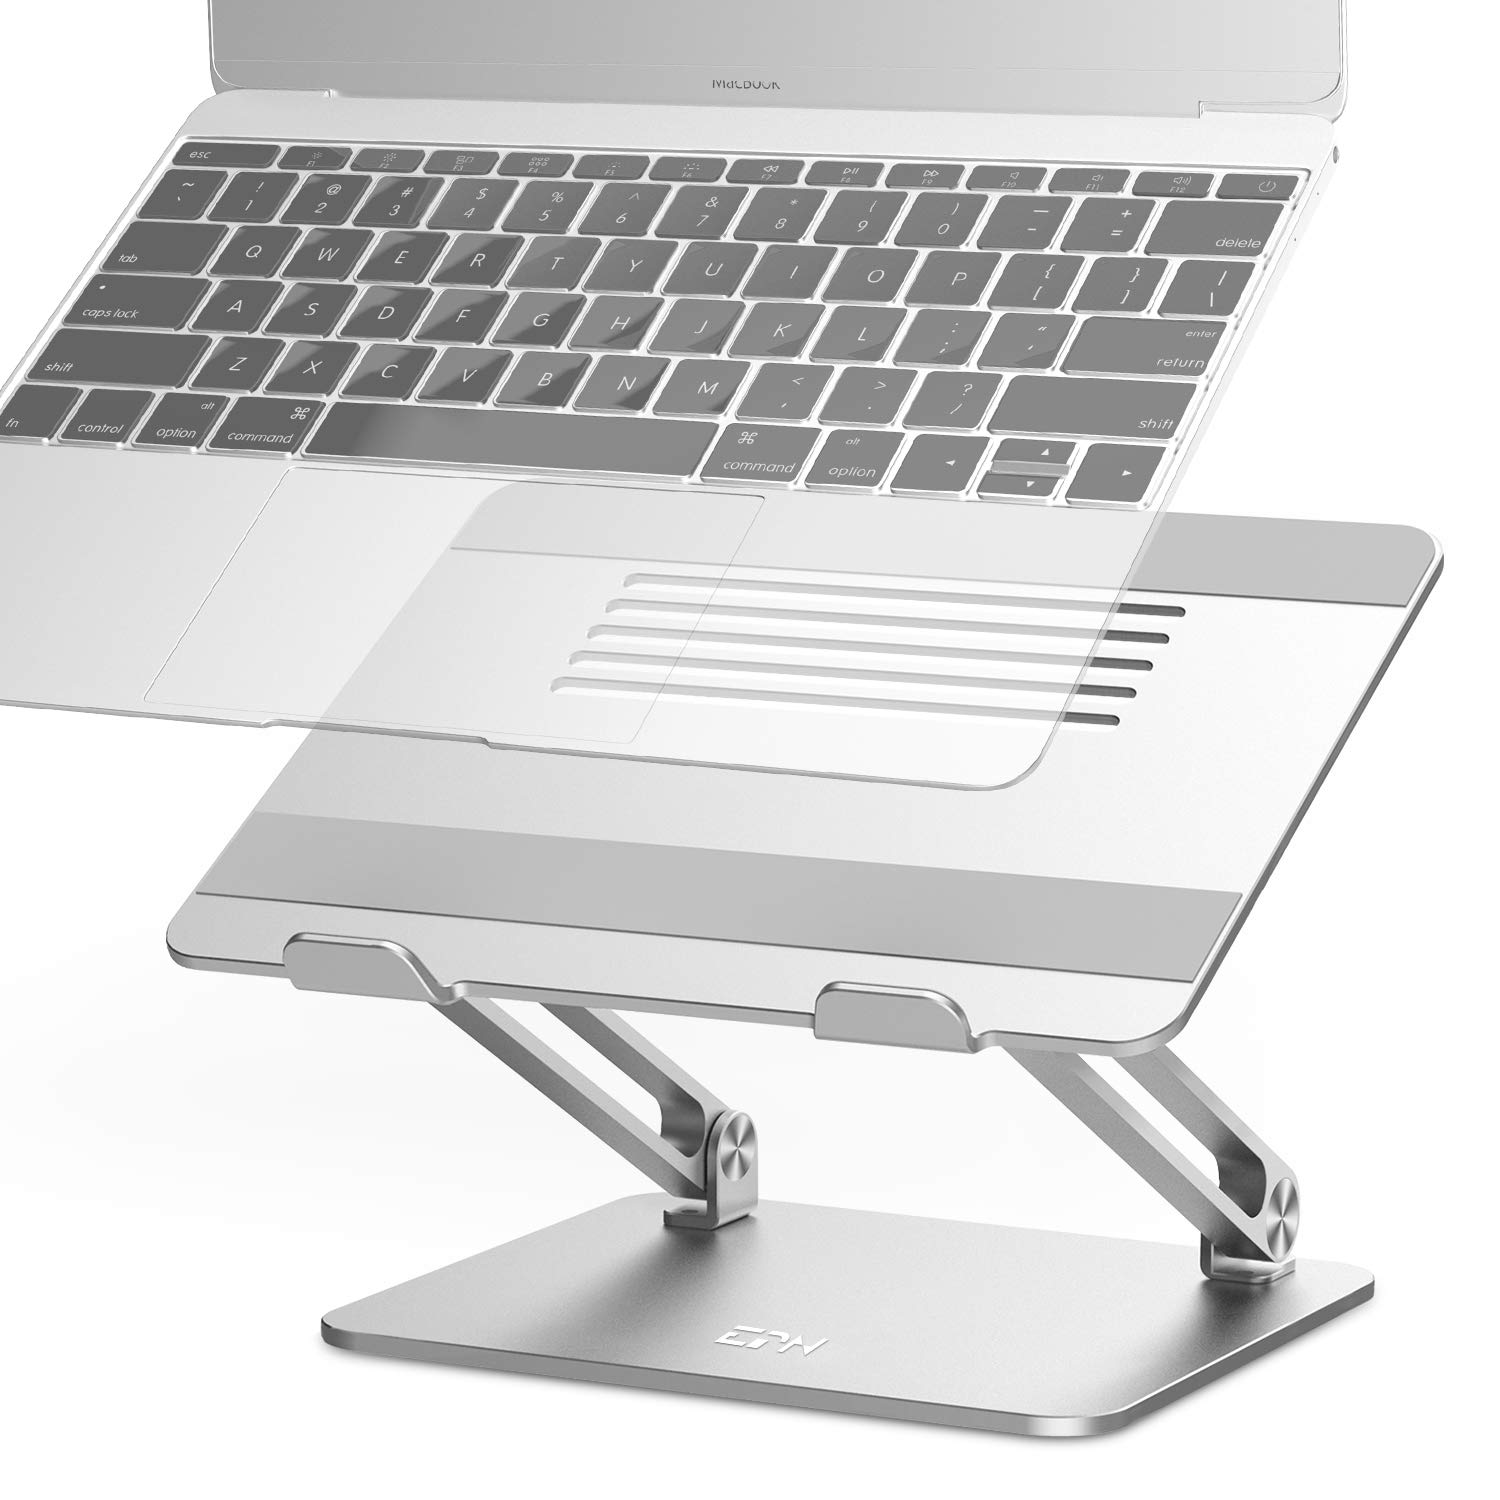 Adjustable Laptop Stand, EPN Laptop Riser with Heat-Vent to Elevate Laptop, Aluminum Notebook Holder Compatible for MacBook Pro/Air, Surface Laptop, Dell XPS, HP, Samsung, Lenovo, Other 11-17.3 Inches by EPN